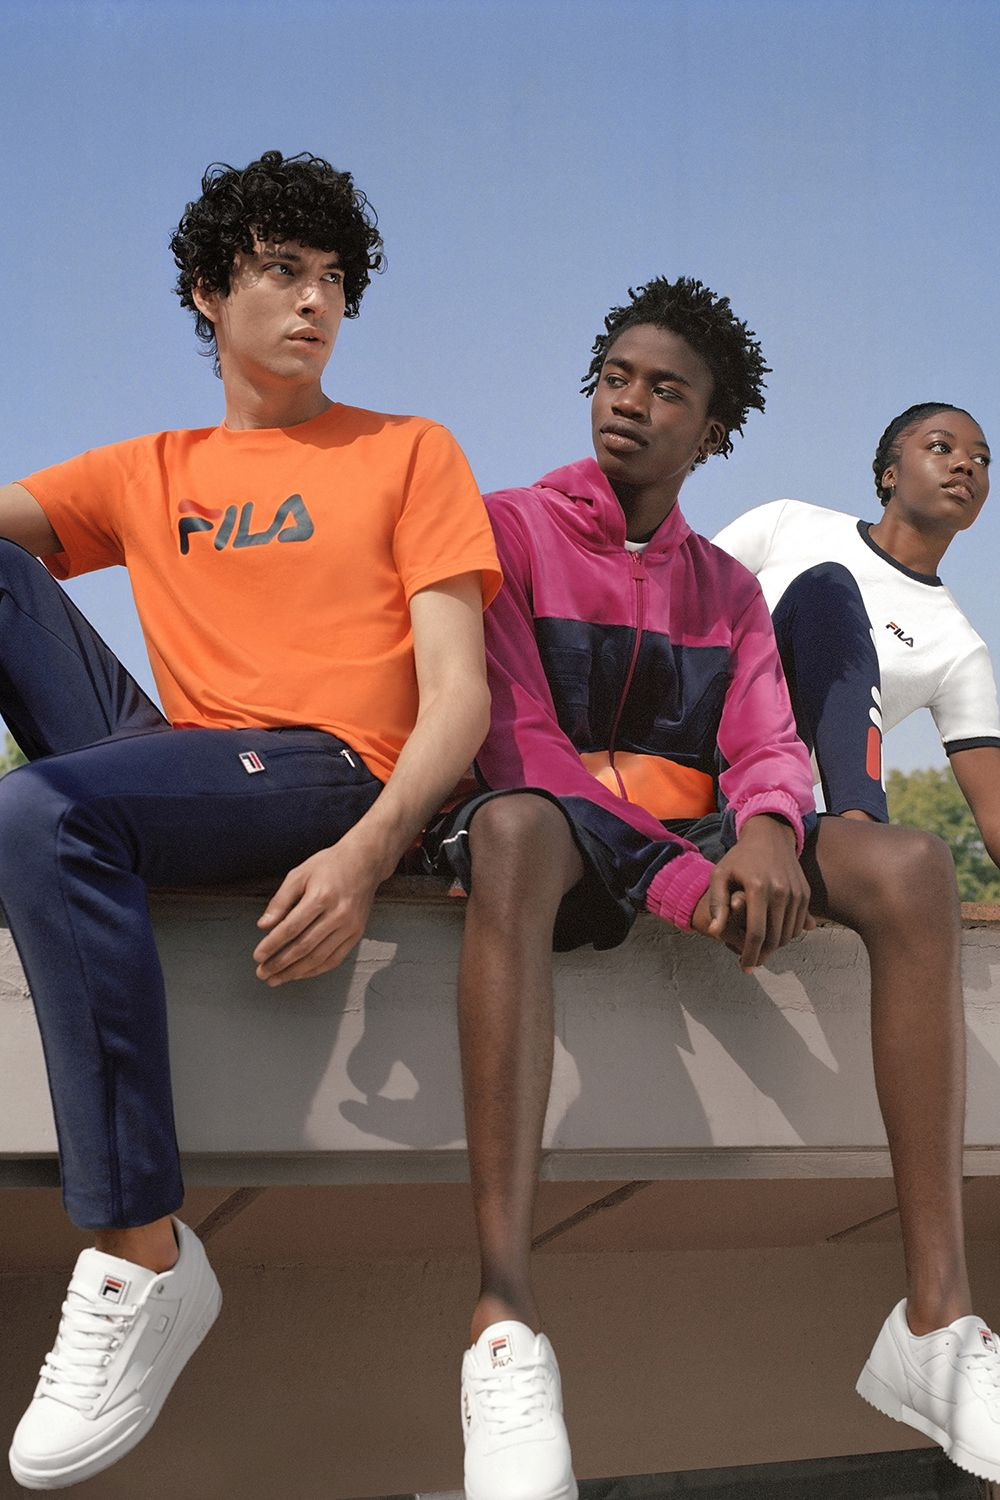 Fila Spring 2018 Heritage Collection